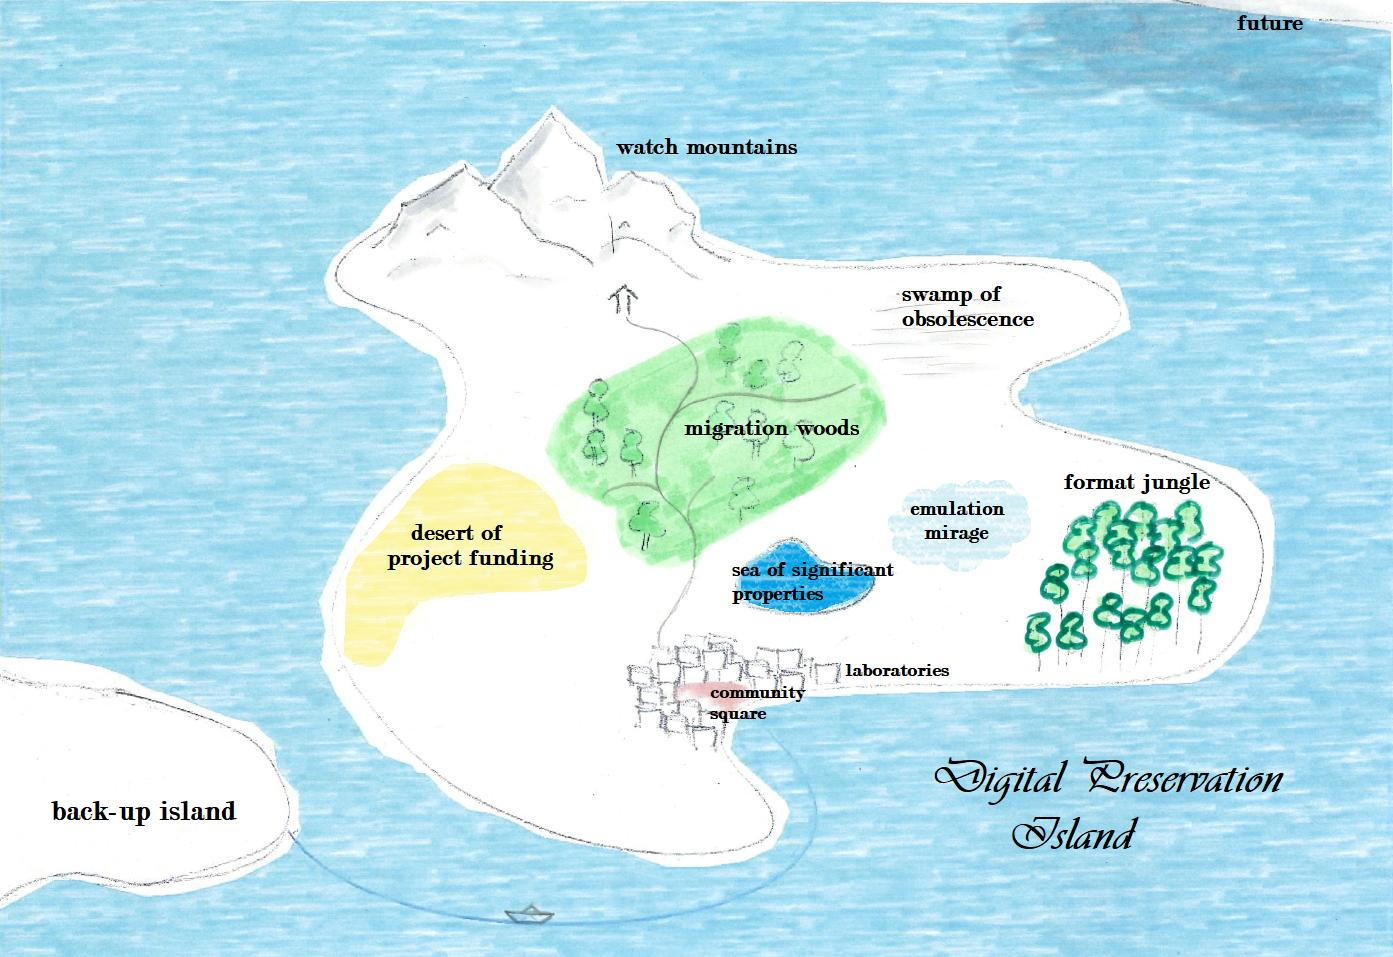 Map of Digital Preservation Island